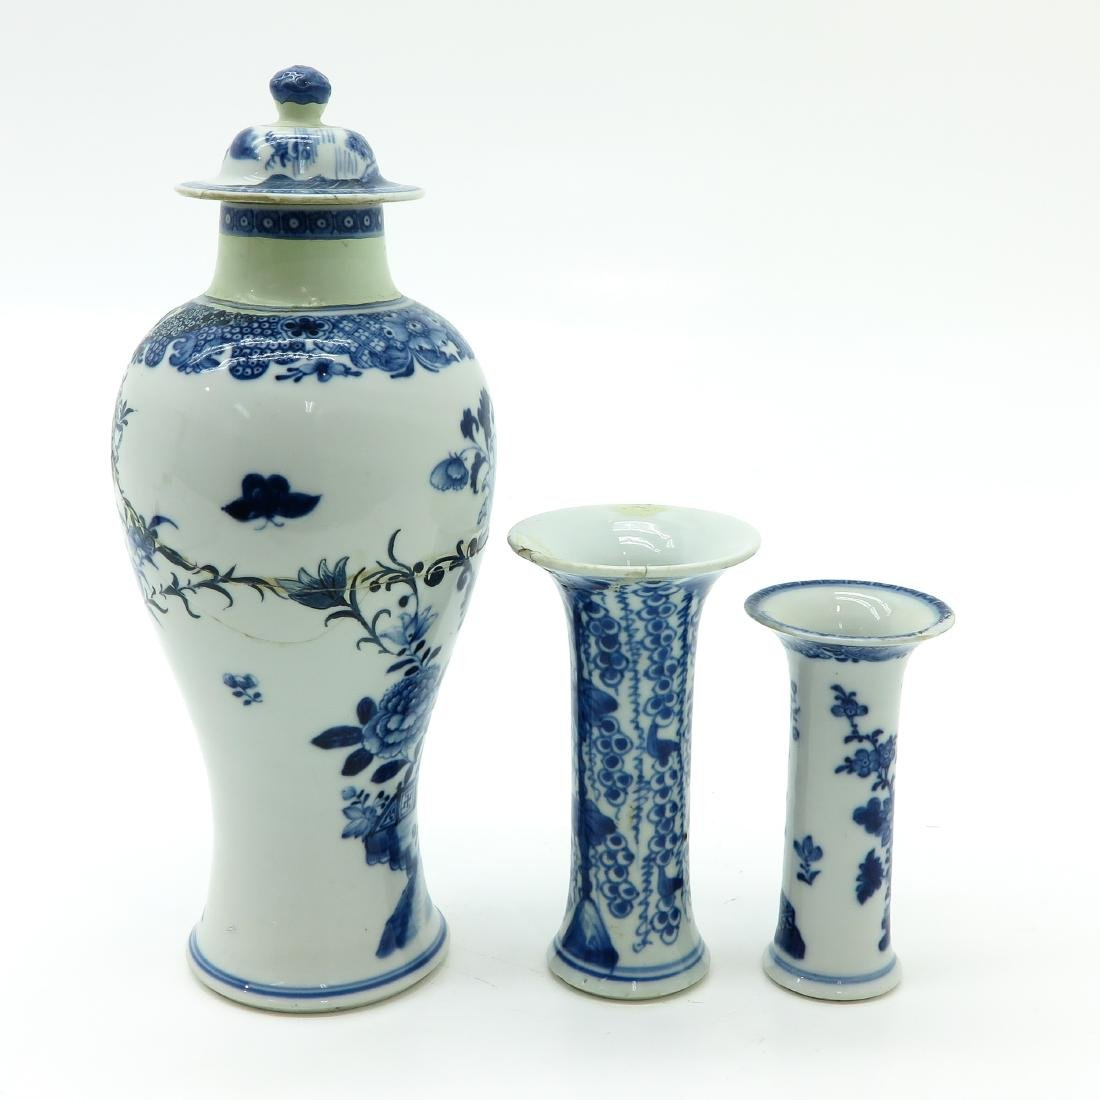 Lot of 3 Blue and White Vases - 4